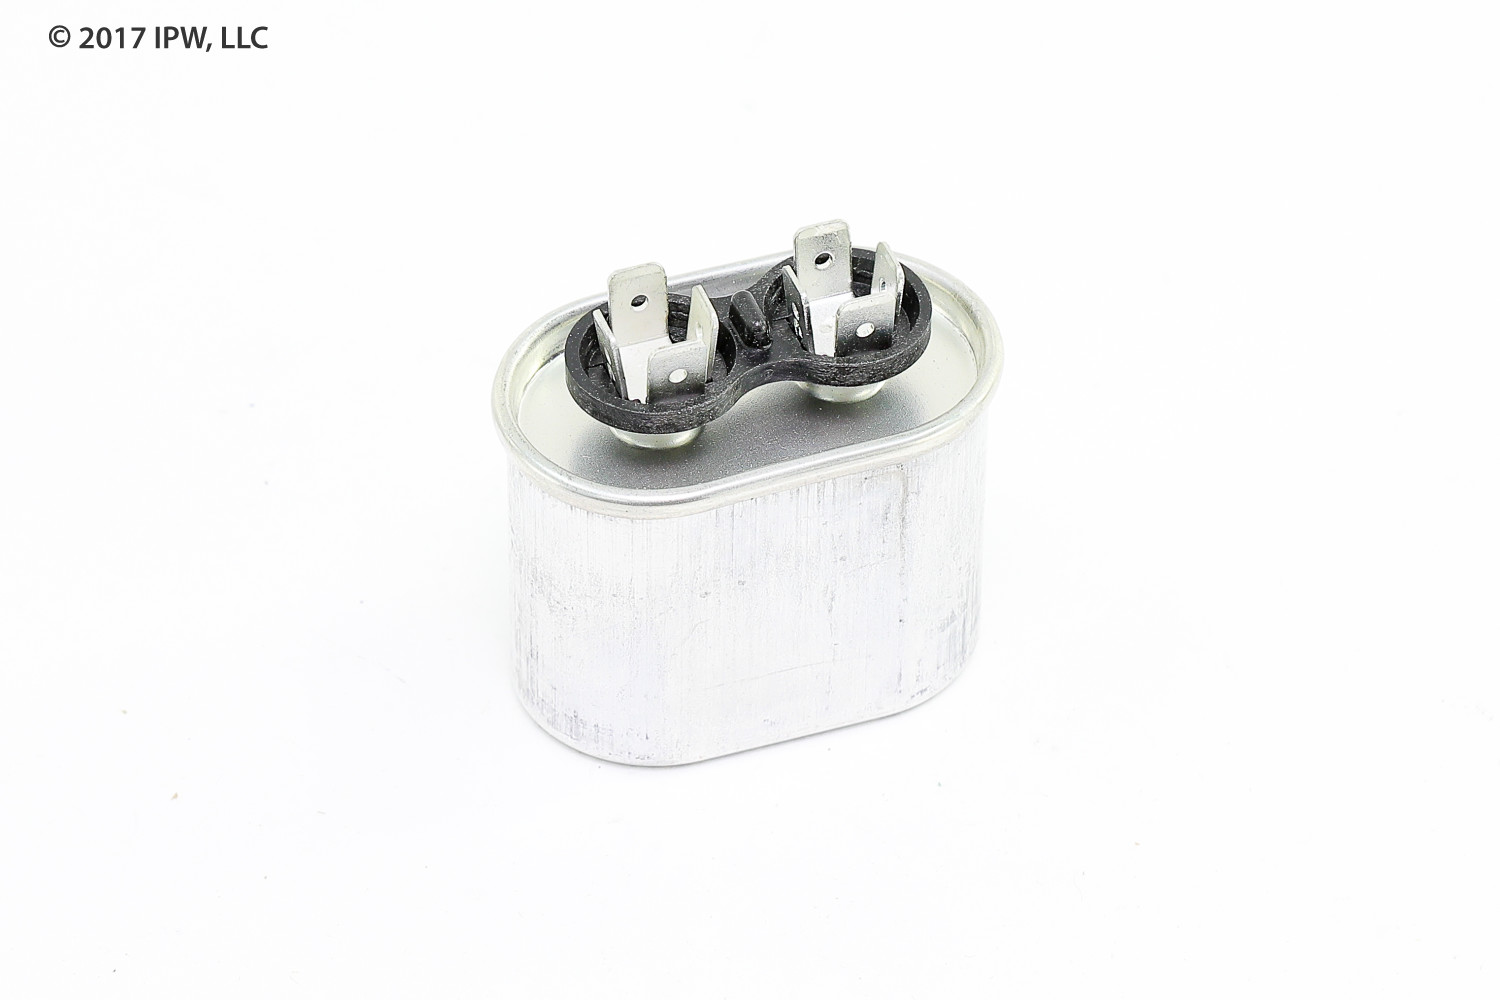 MARS 12905 5MFD 370V Oval Run Capacitor